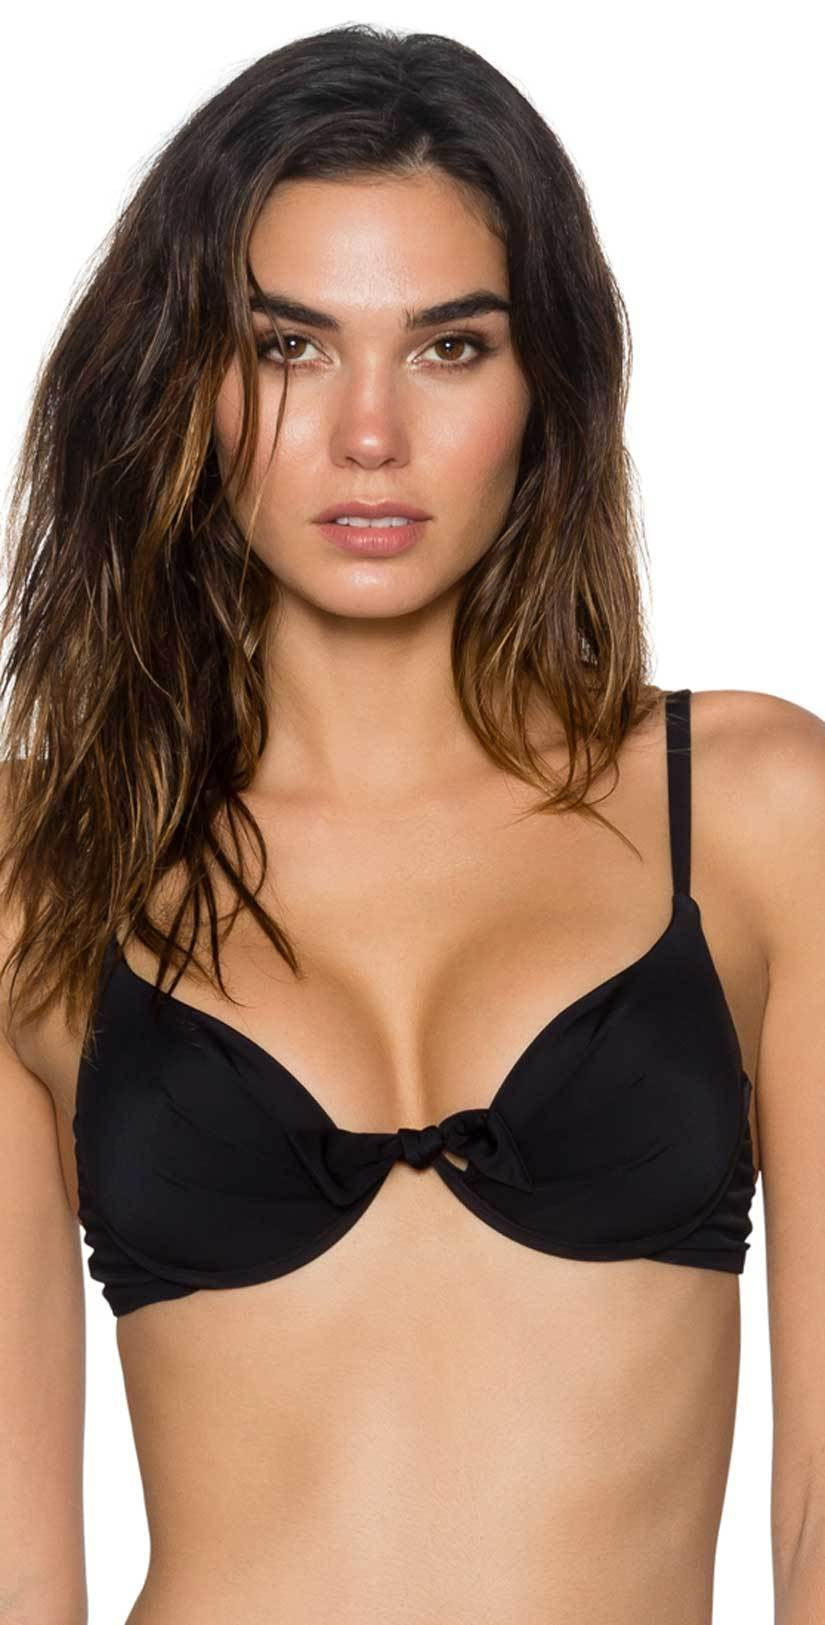 Sunsets Legend Underwire Push Up Top in Black 71T-BLCK: